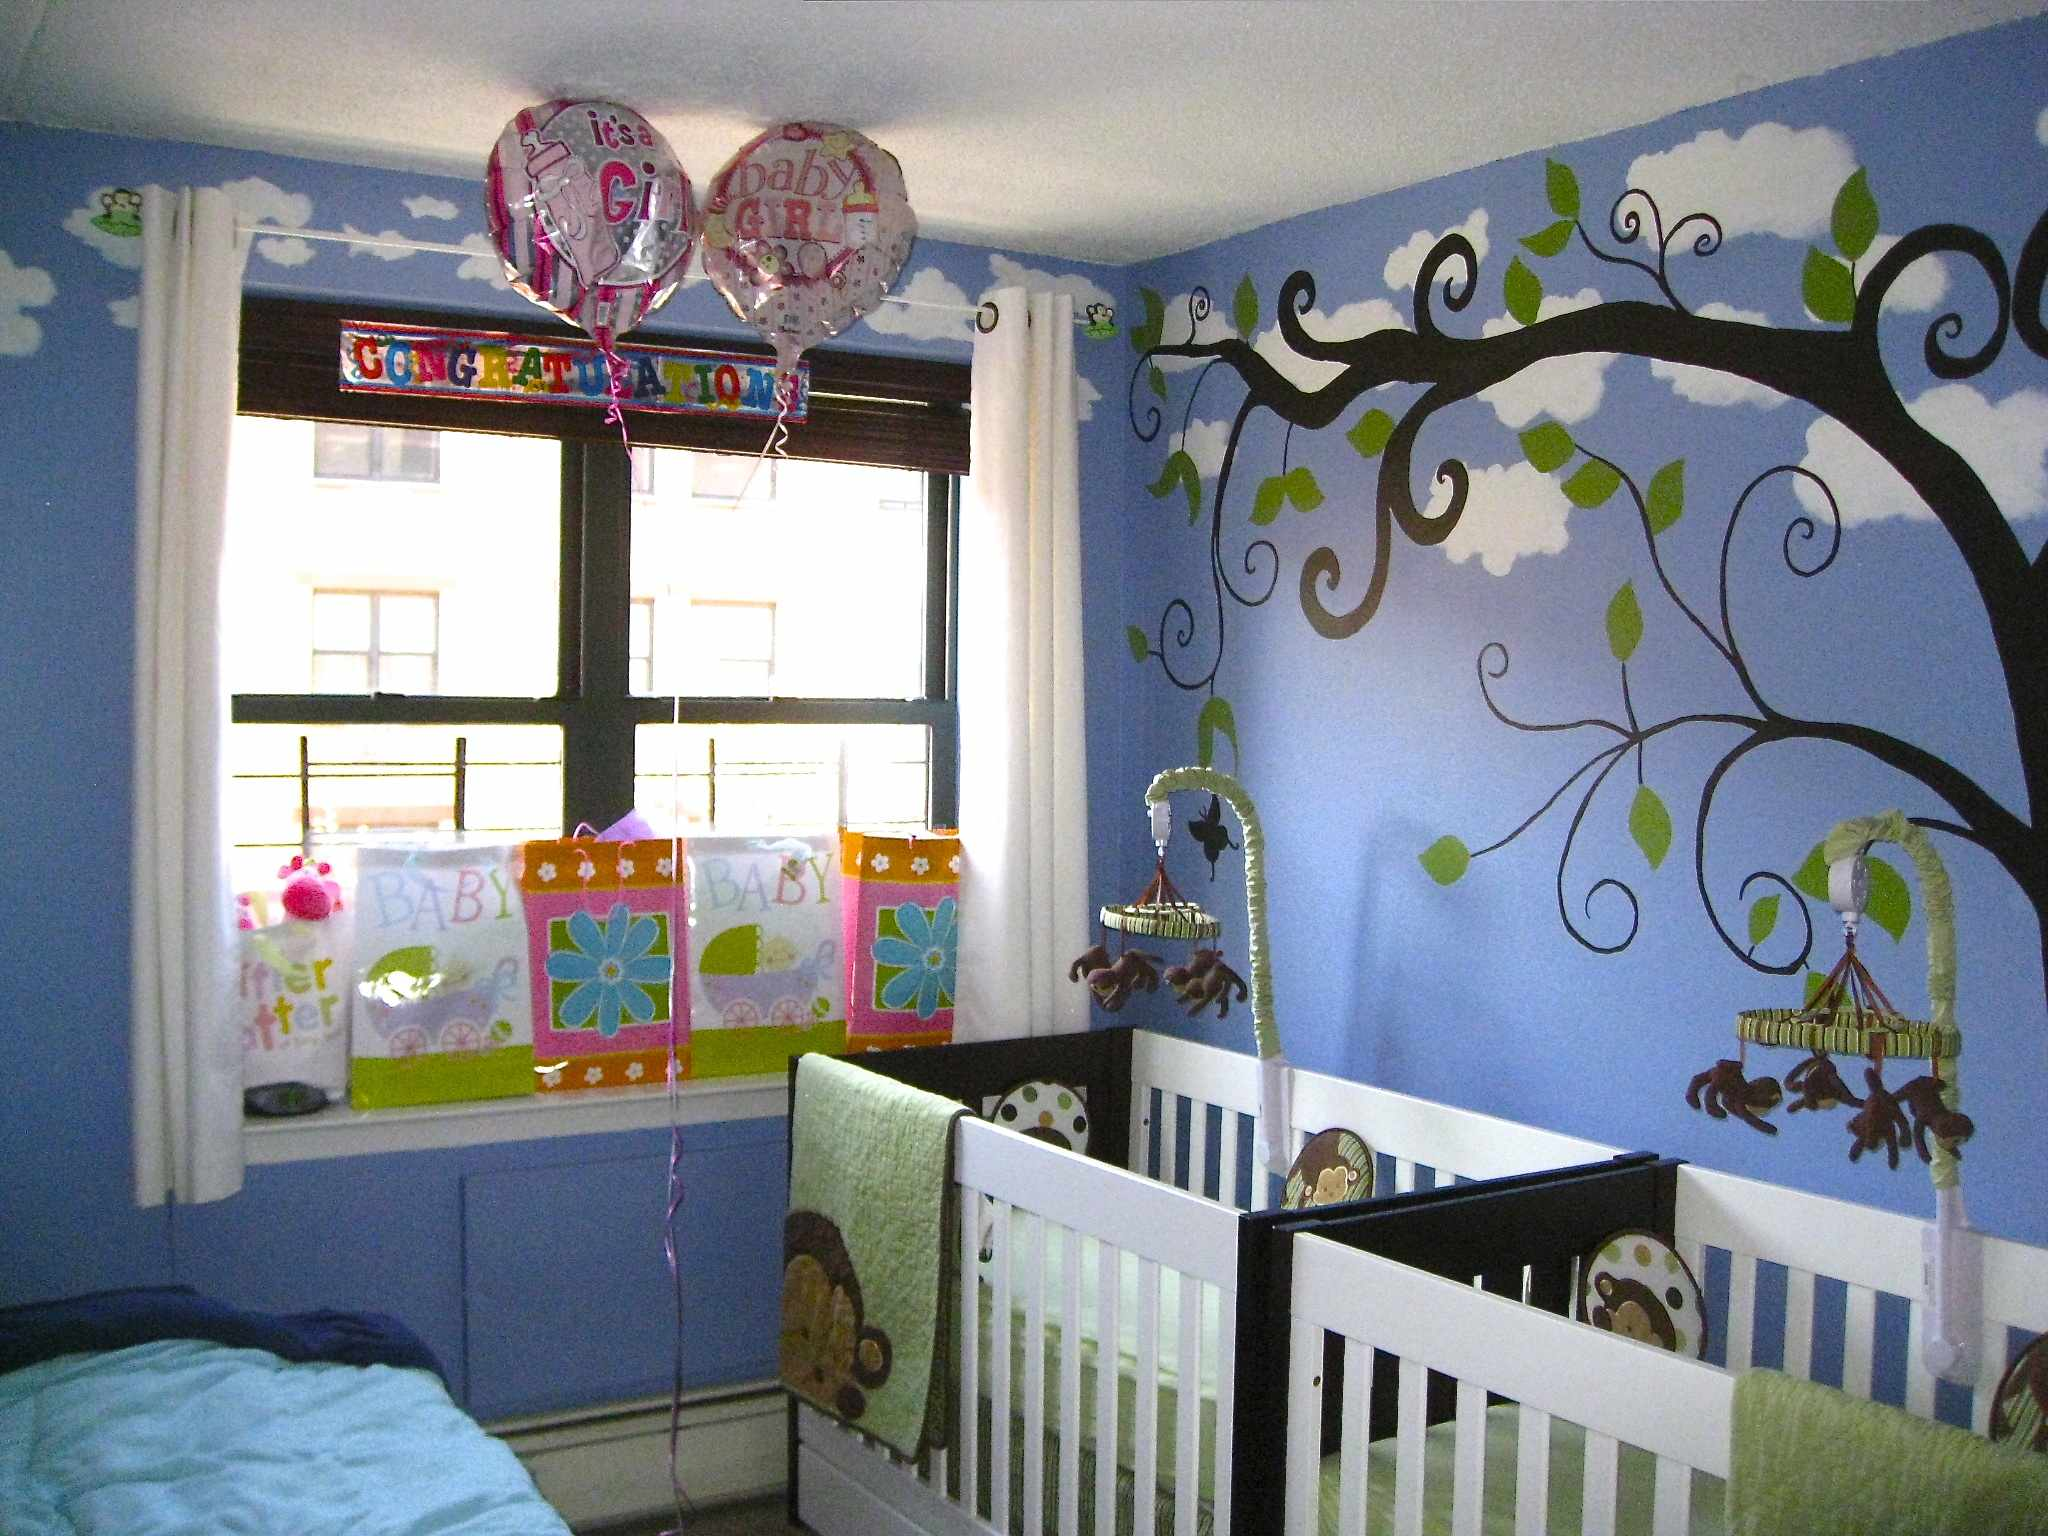 How to create a space saving baby nursery the layman 39 s for Best baby cribs for small spaces